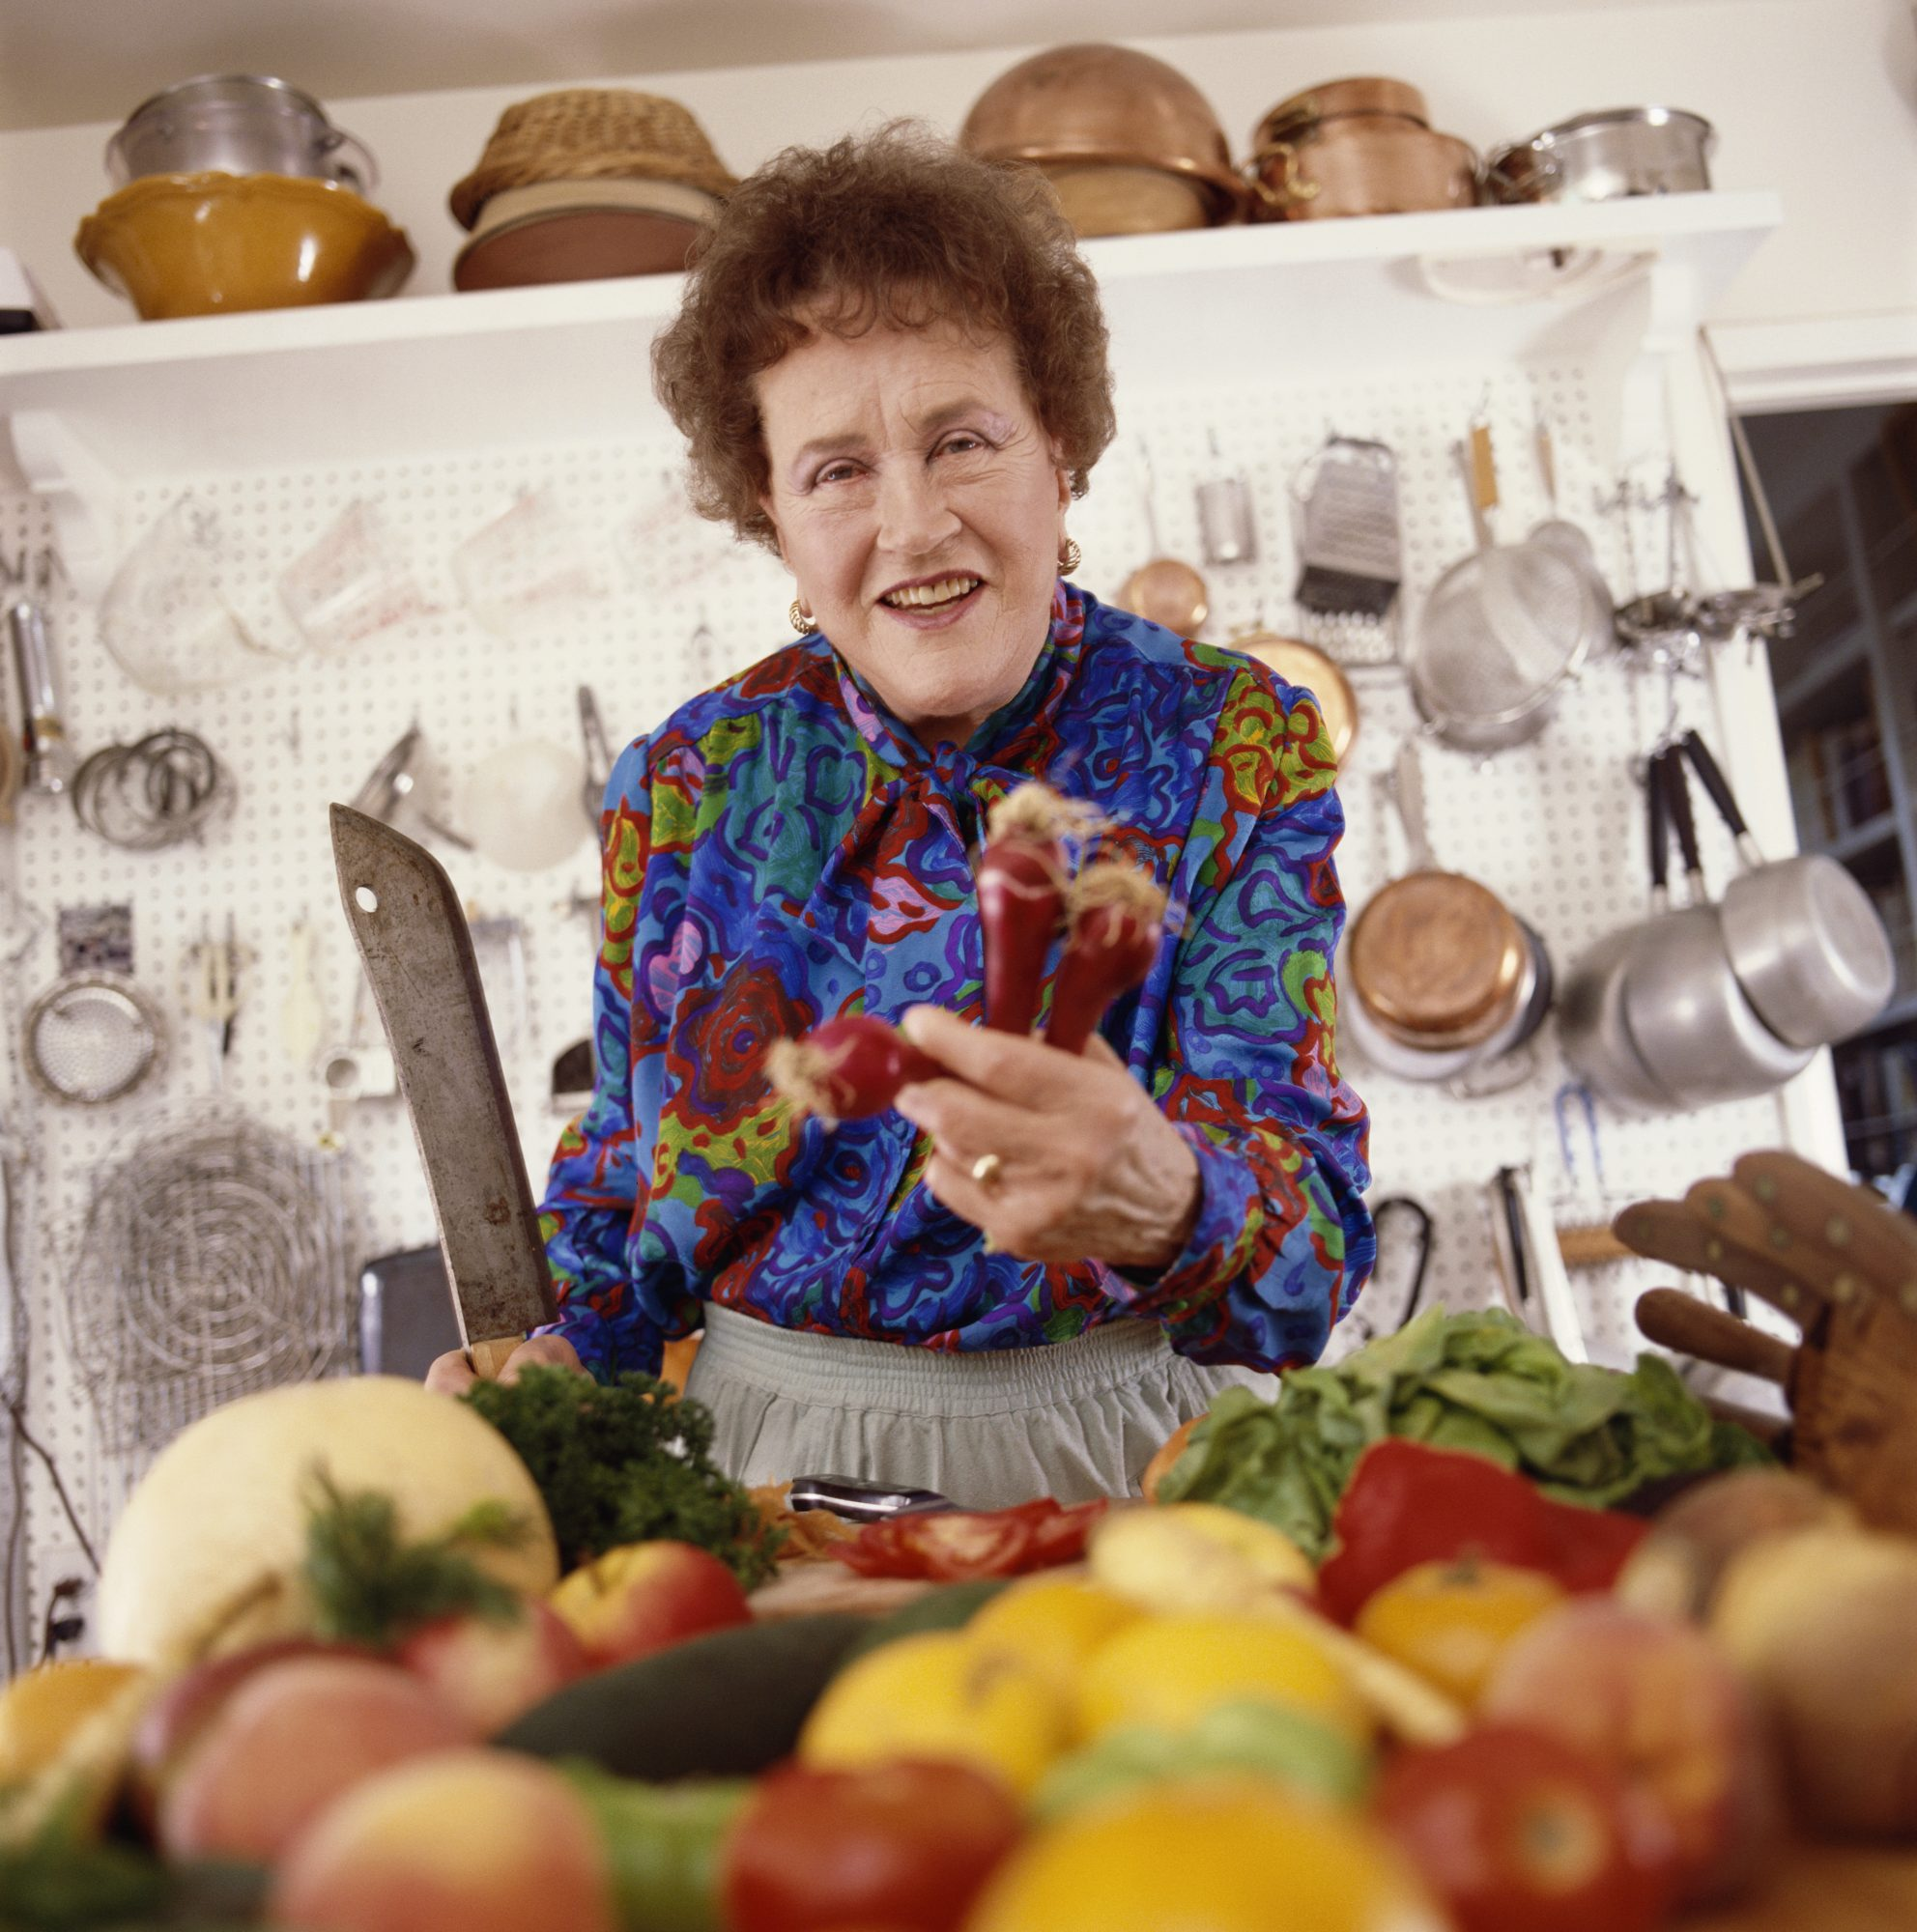 10 Essential Julia Child Recipes Everyone Should Master